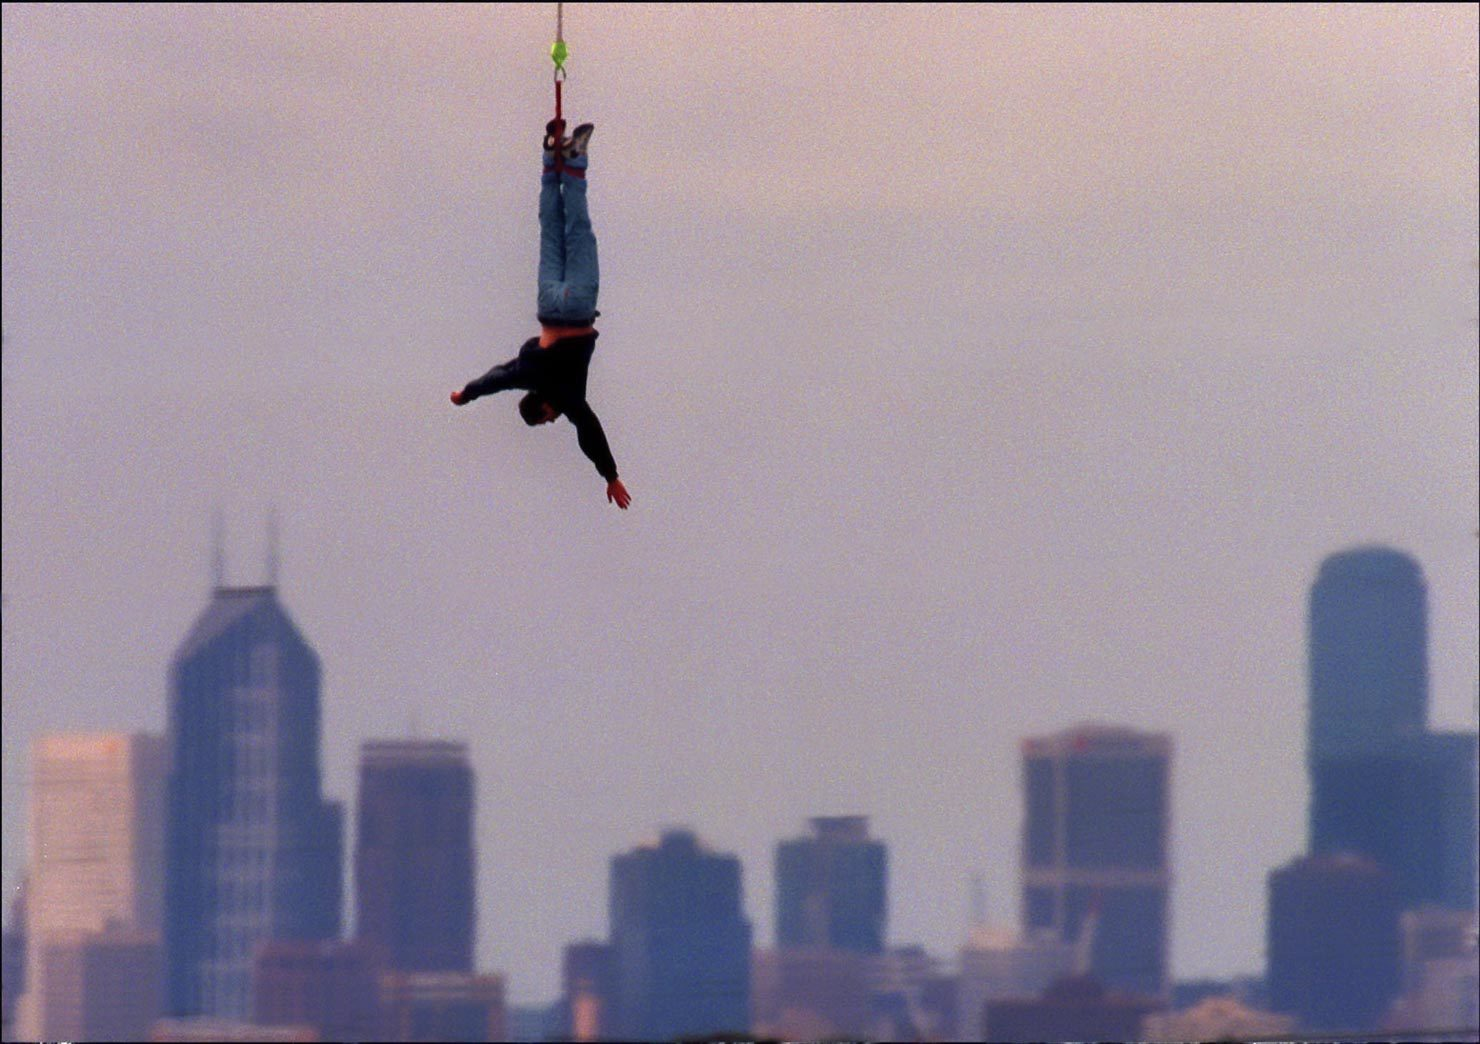 A man bunjee jumping with city backdrop